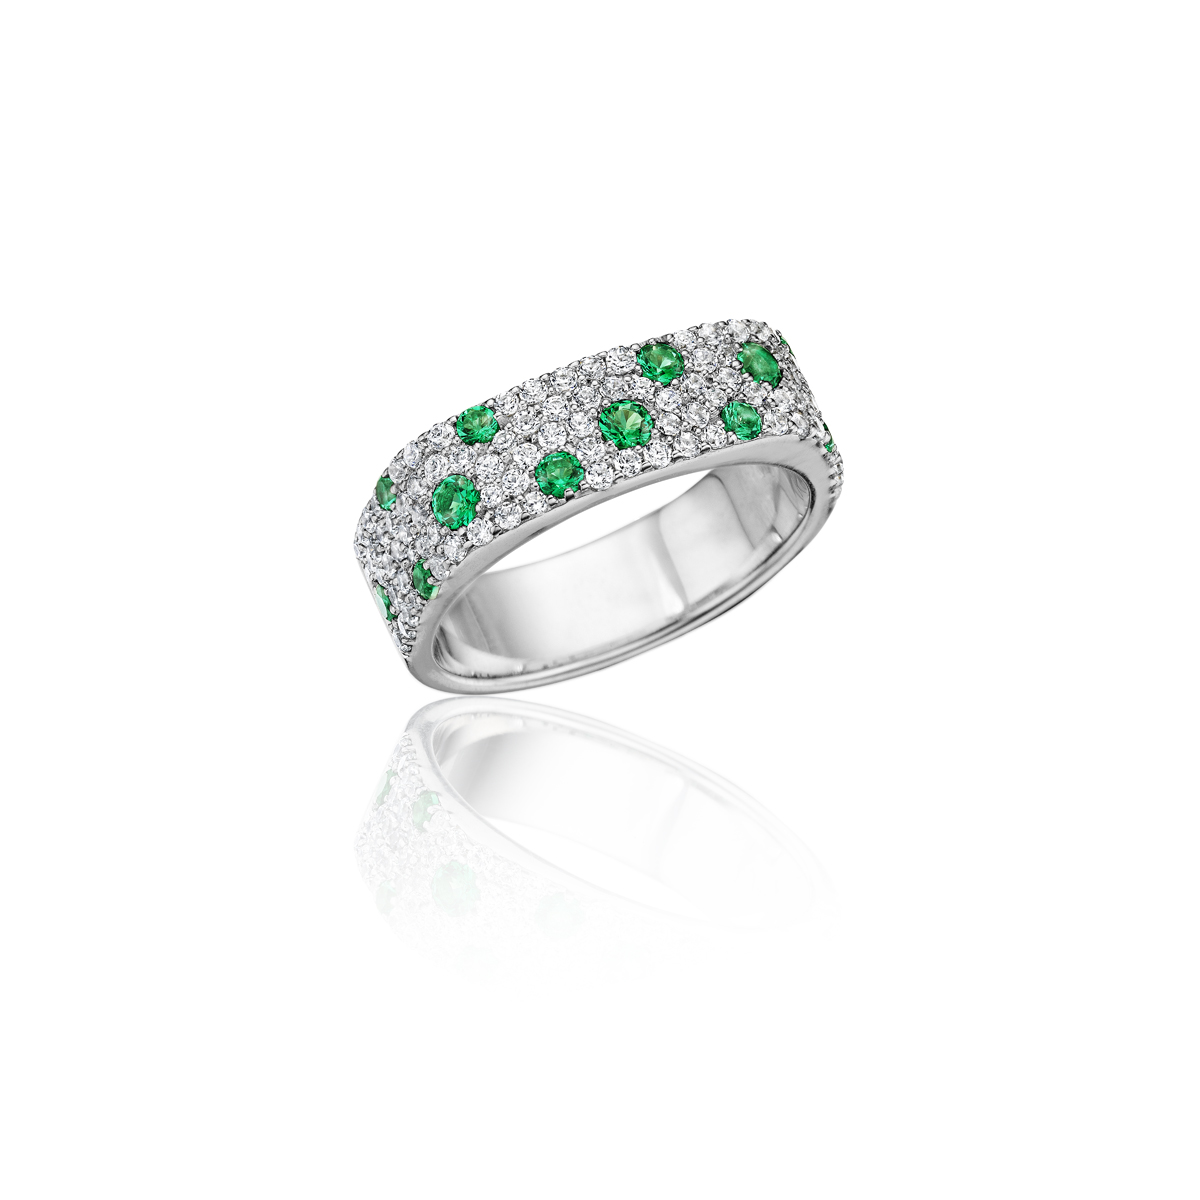 Under the Stars Emerald-Speckled Diamond Ring - This under the stars emerald-speckled diamond ring comes in a variety of material types like 14k white gold, yellow gold, rose gold and can be customized with your jeweler. Fana diamond earrings are perfect for that special woman in your life.